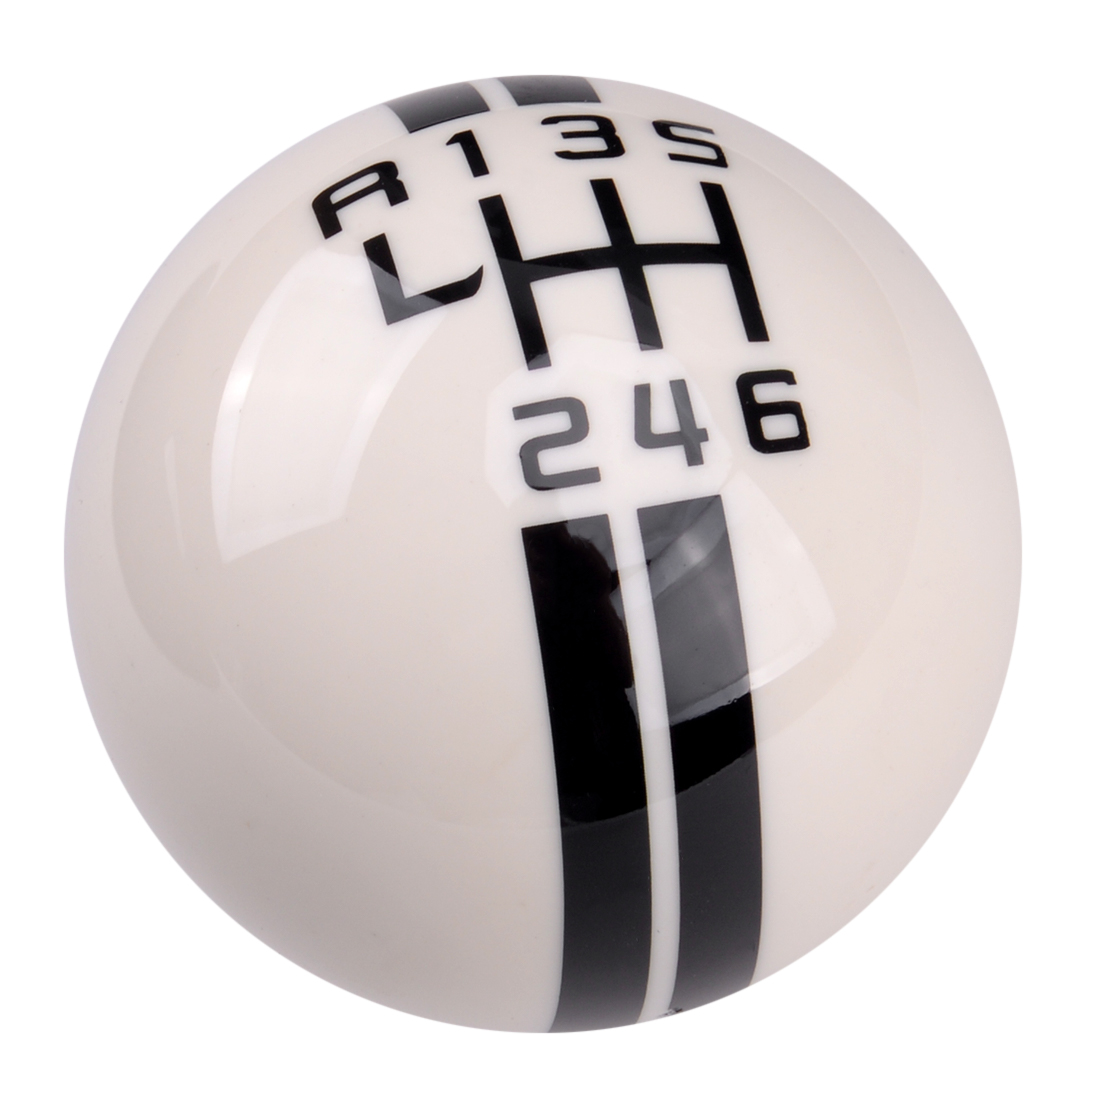 6 Speed Manual Gear Shift Knob Ball Fit for Ford Mustang Shelby GT 500 Cobra MT White Car Accessories